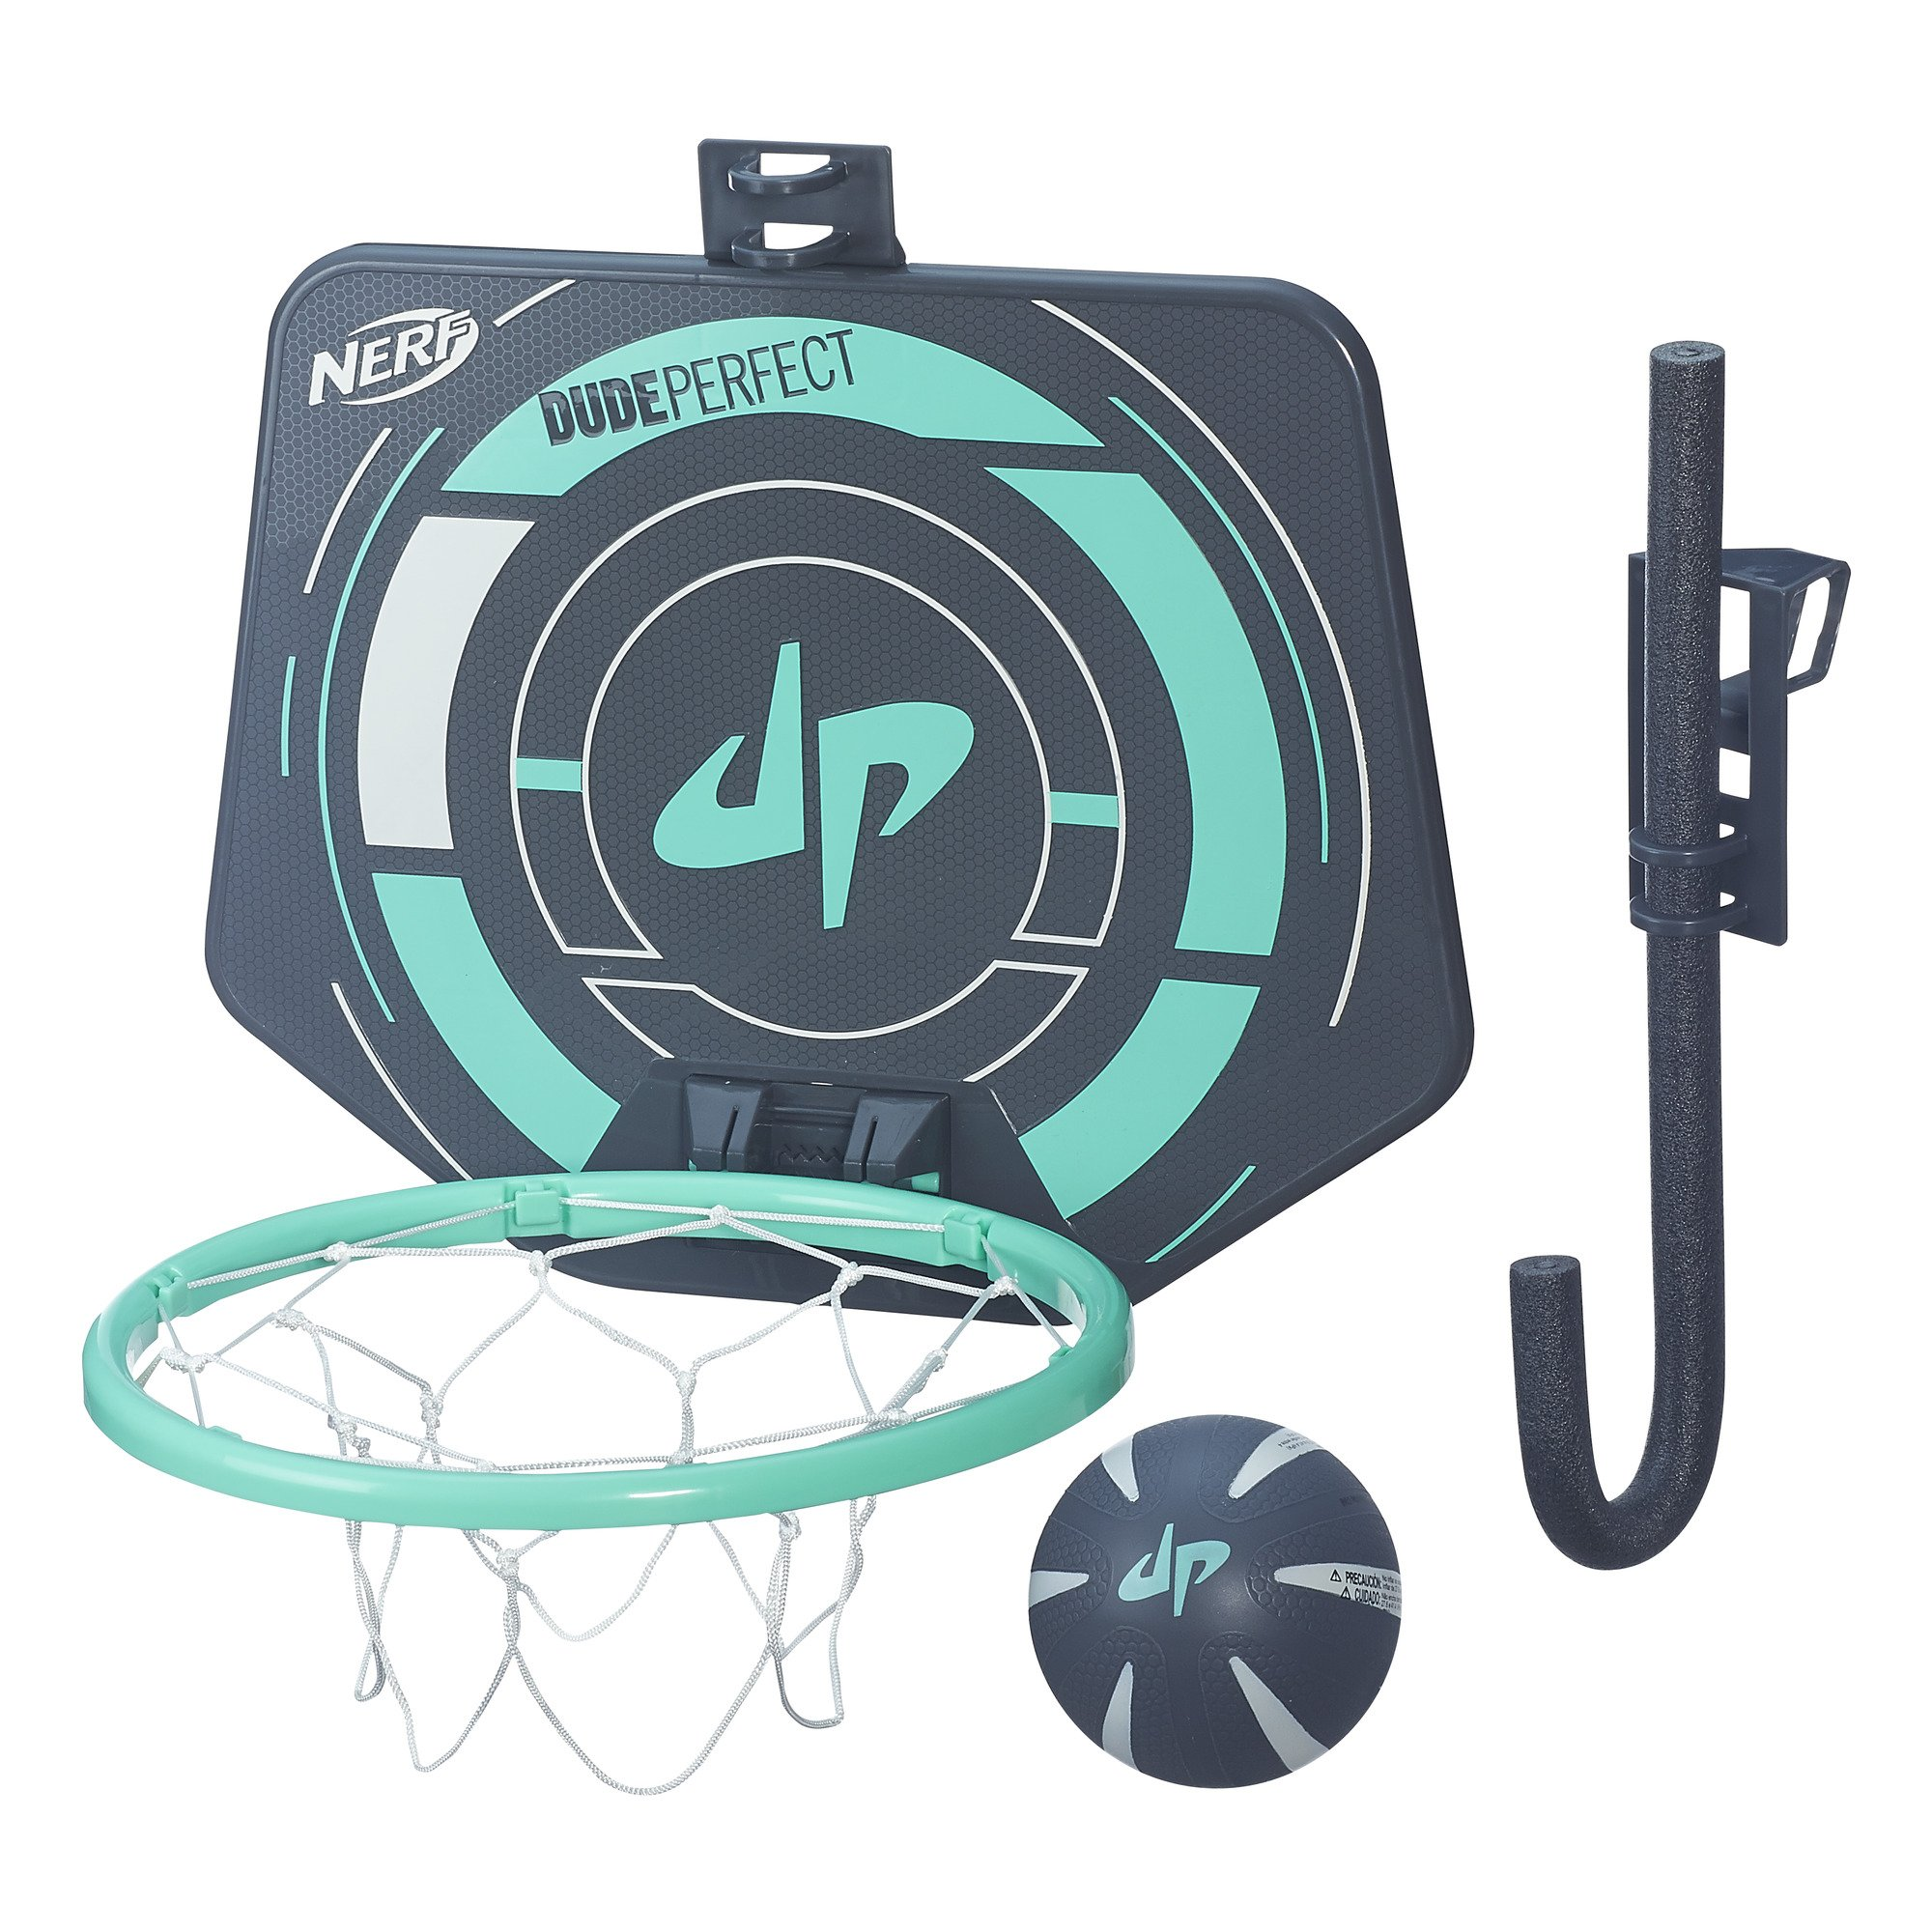 NERF Sports Dude Perfect PerfectShot Hoops by NERF